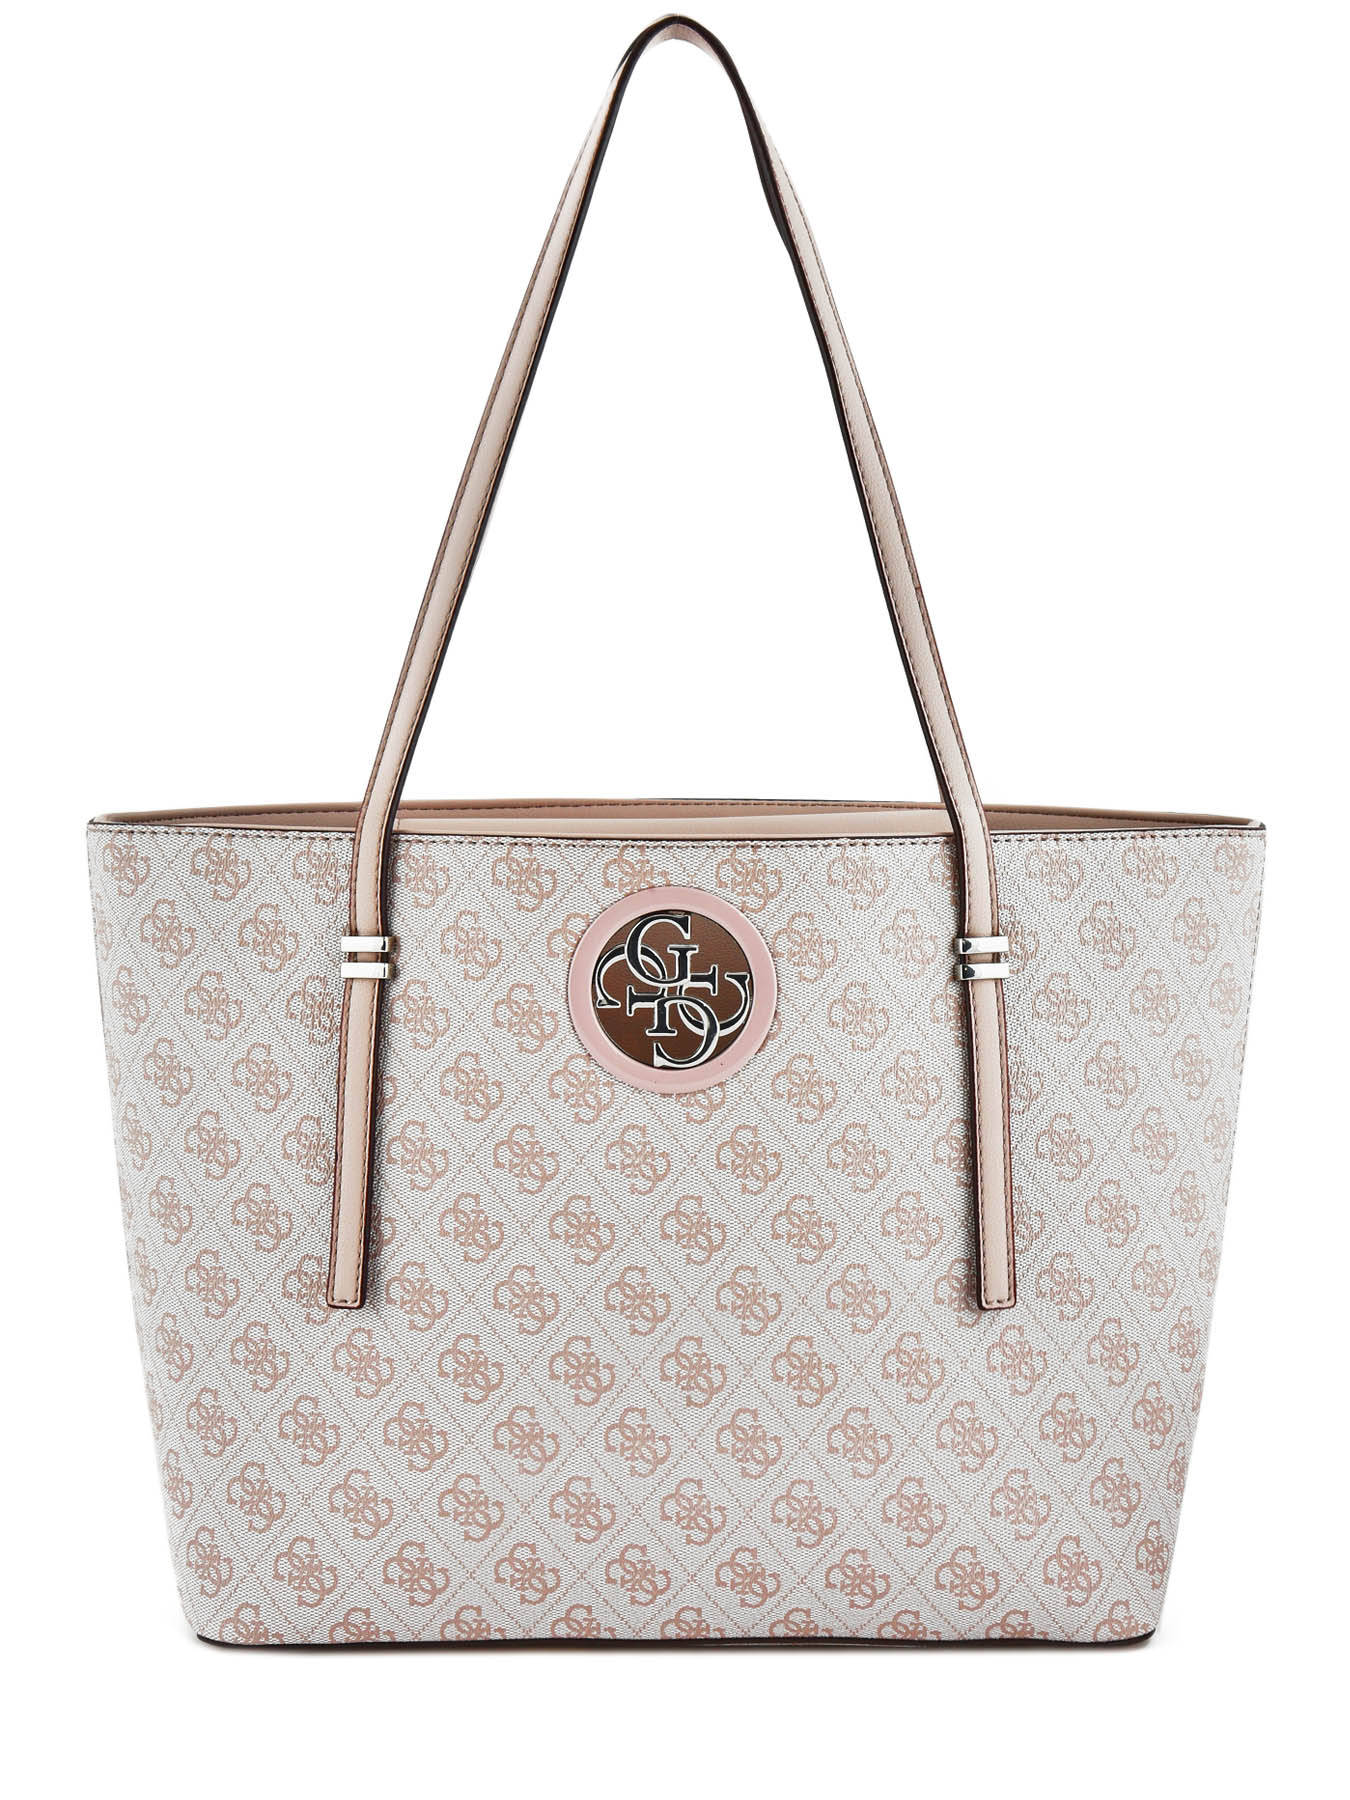 ... Shoulder Bag Open Road Guess Pink open road SY718623 ... a255ee0288281